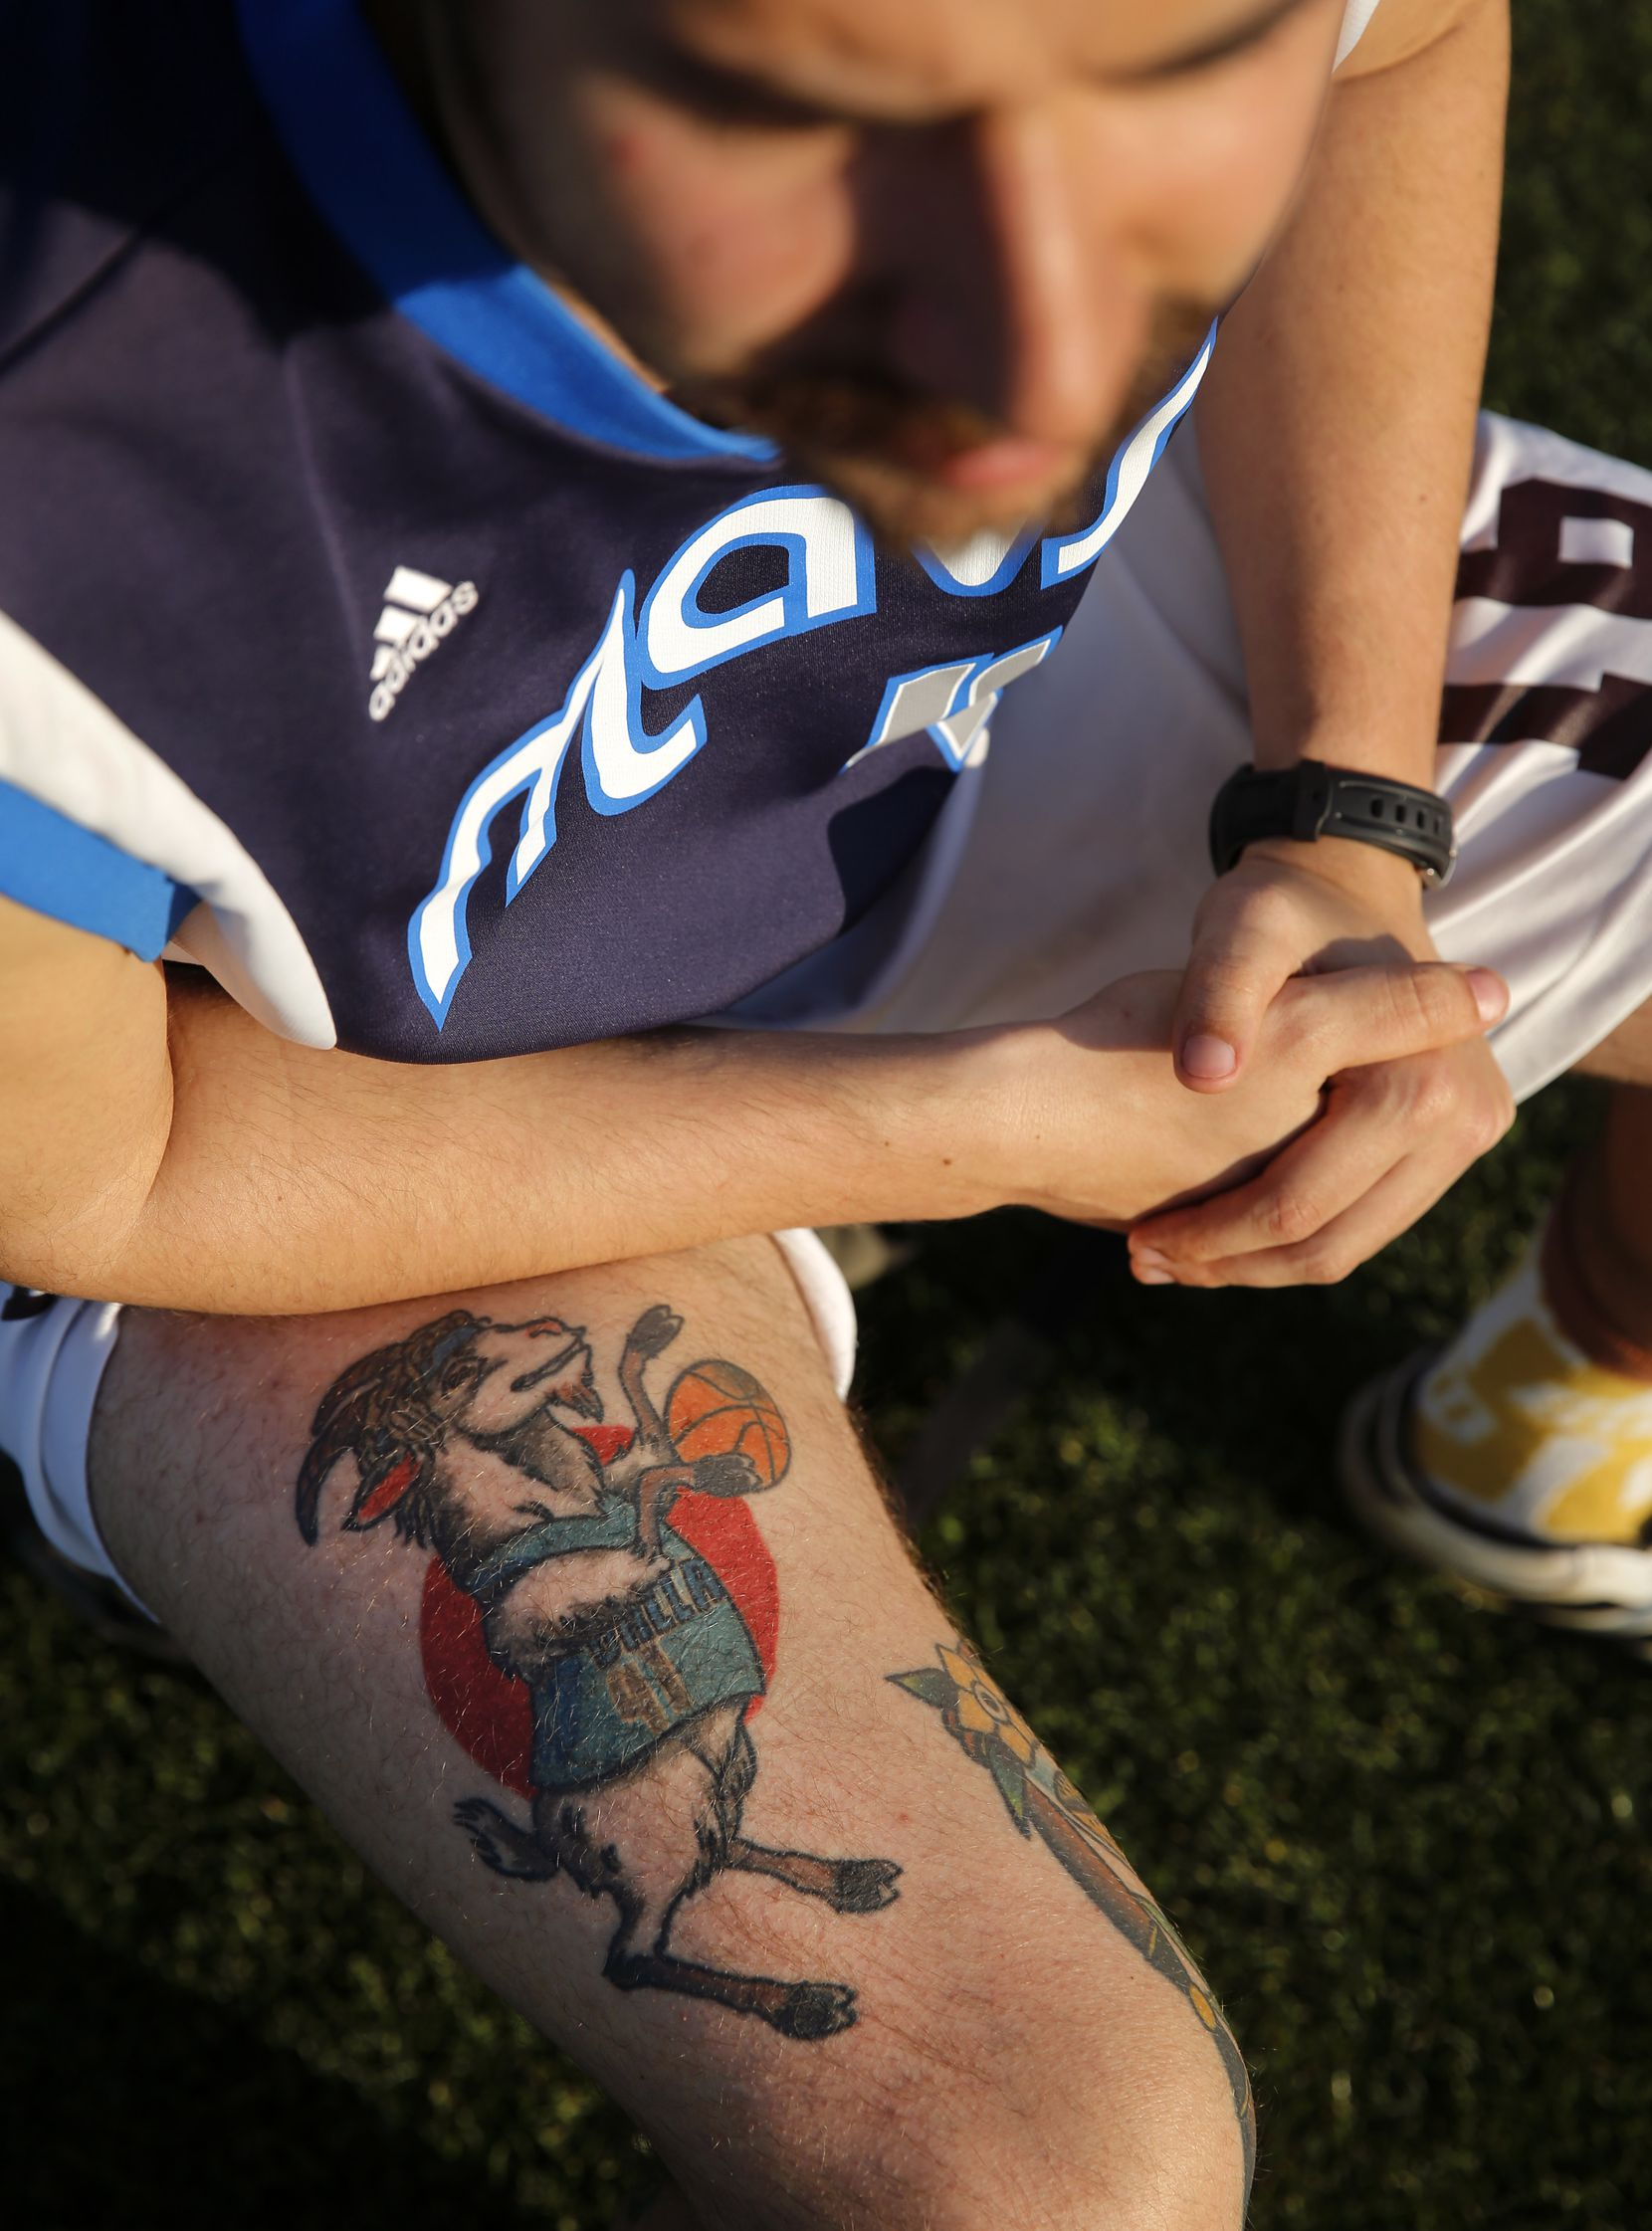 Mark Campbell displays his tattoo of the GOAT (Greatest of All Time) and Dallas Mavericks All-Star forward Dirk Nowitzki.